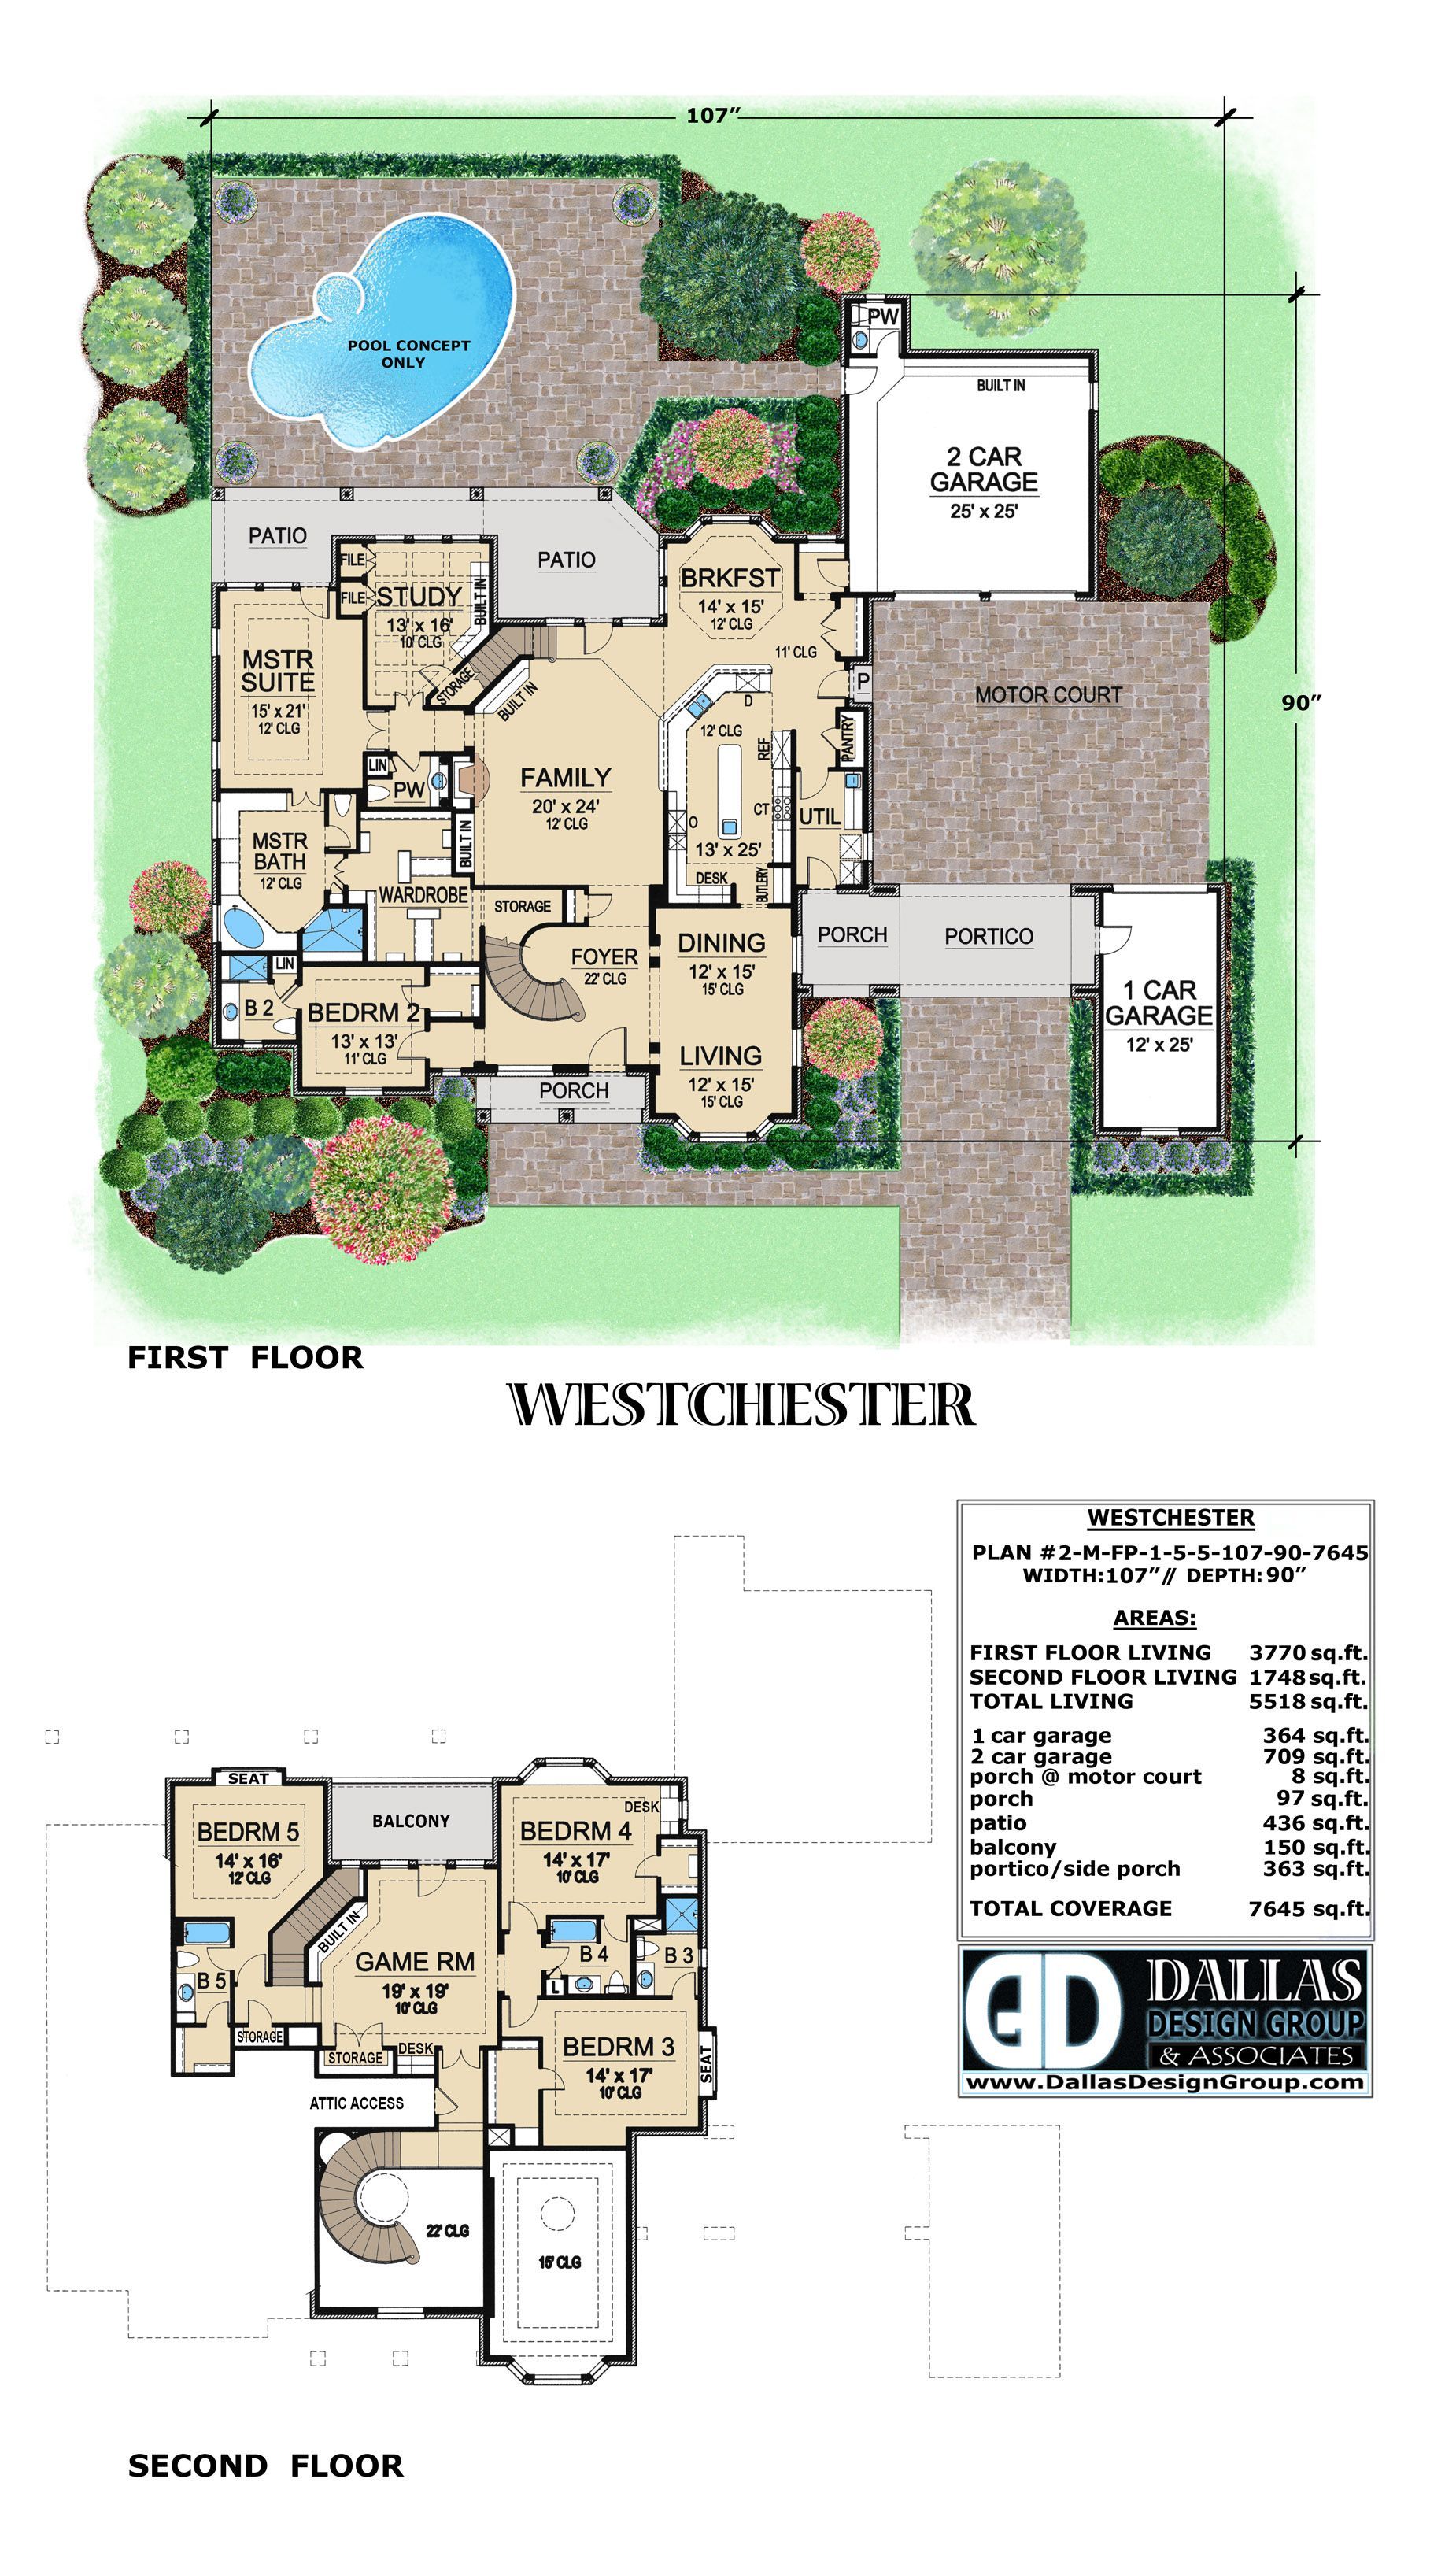 Westchester House Plan From Dallas Design Group Check It Out Dallasdesigngroup Com The Leader In Luxury Mountain House Plans Custom Home Plans House Plans